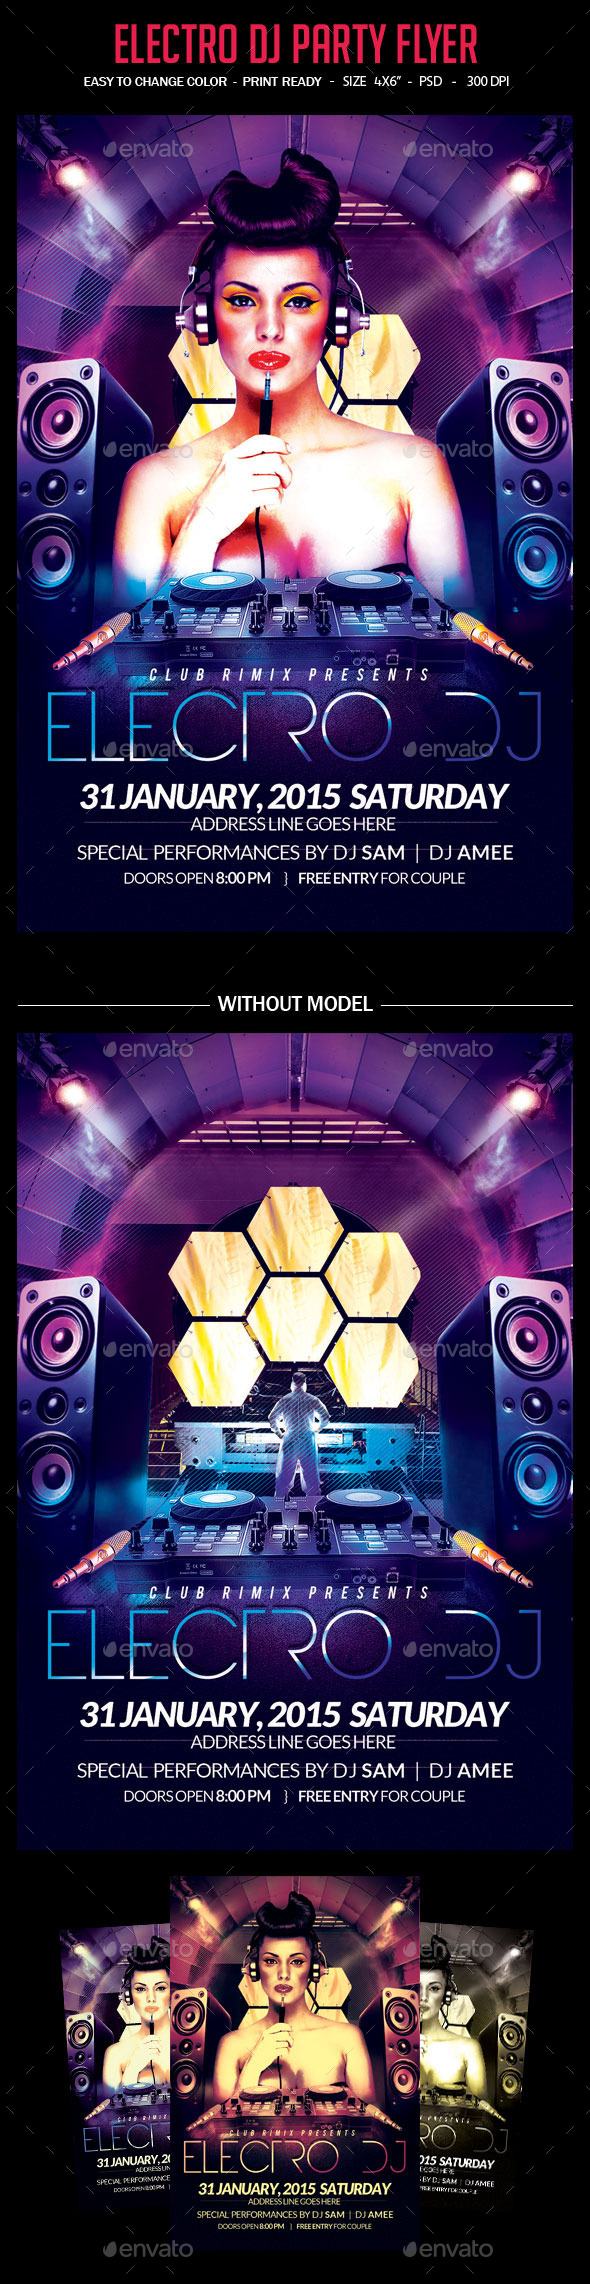 Electro Dj Party Flyer - Clubs & Parties Events